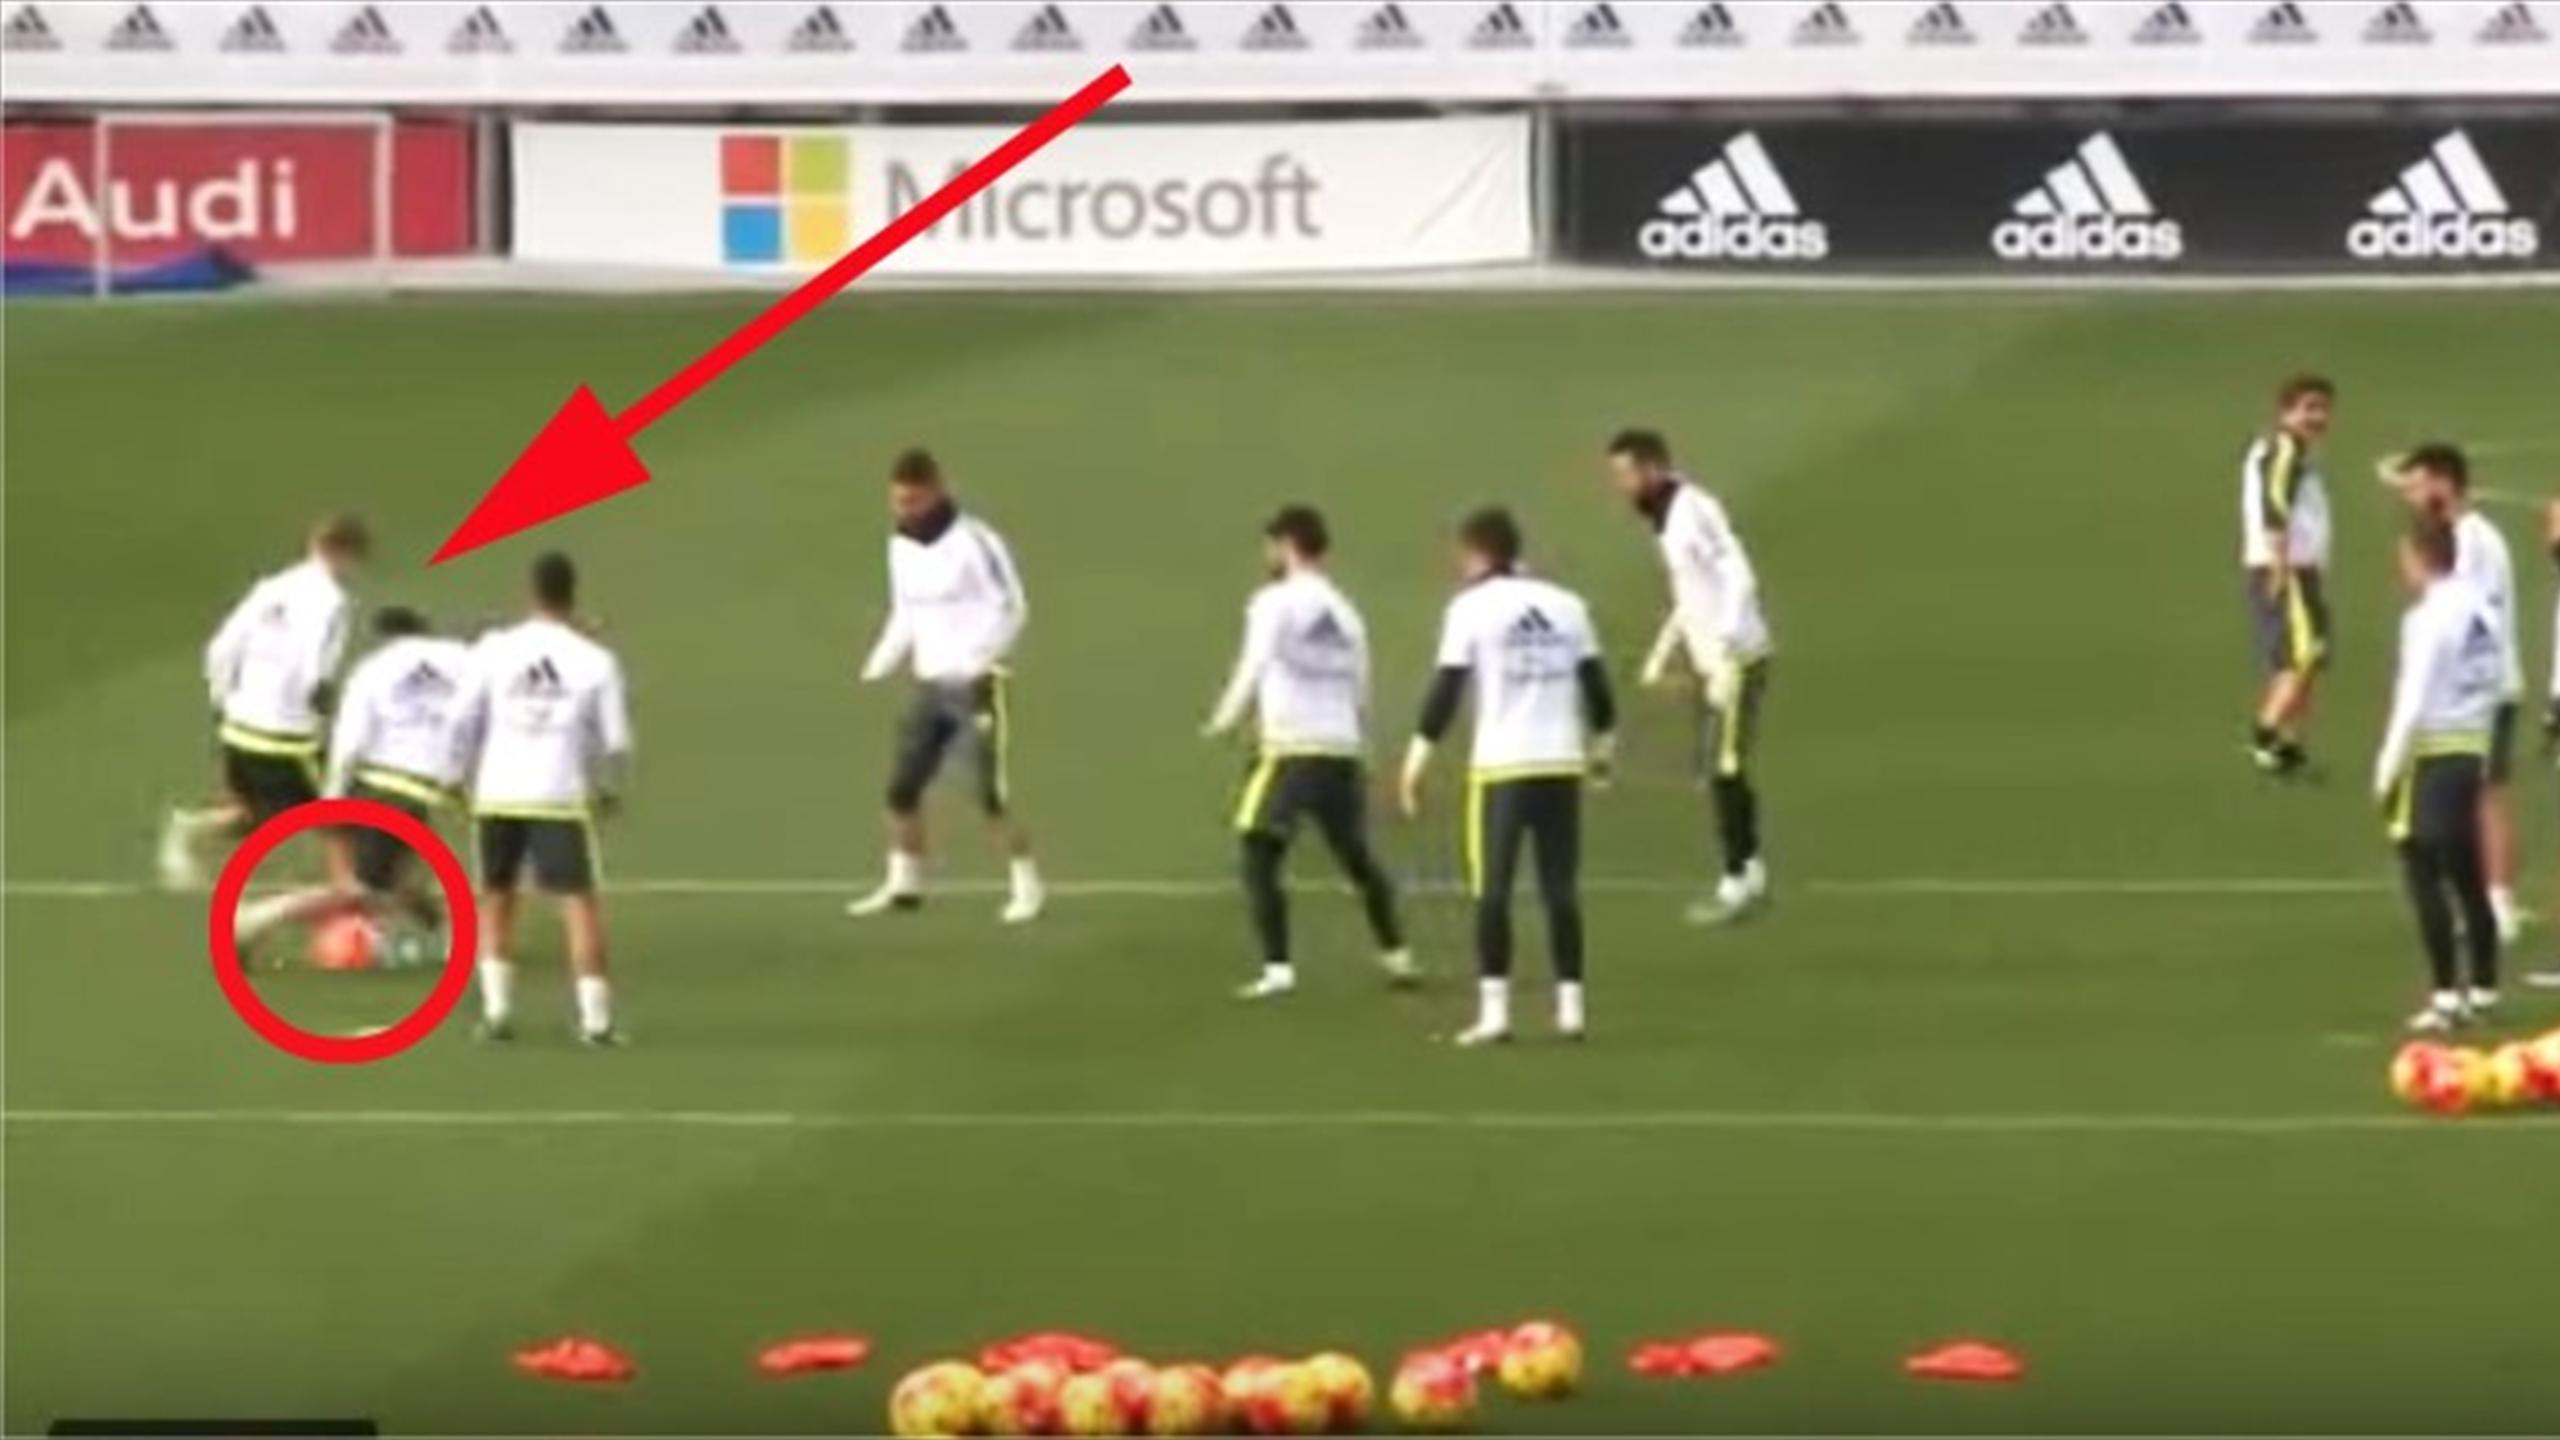 Toni Kroos pulls off brilliant backheel nutmeg in Real Madrid training (Youtube)